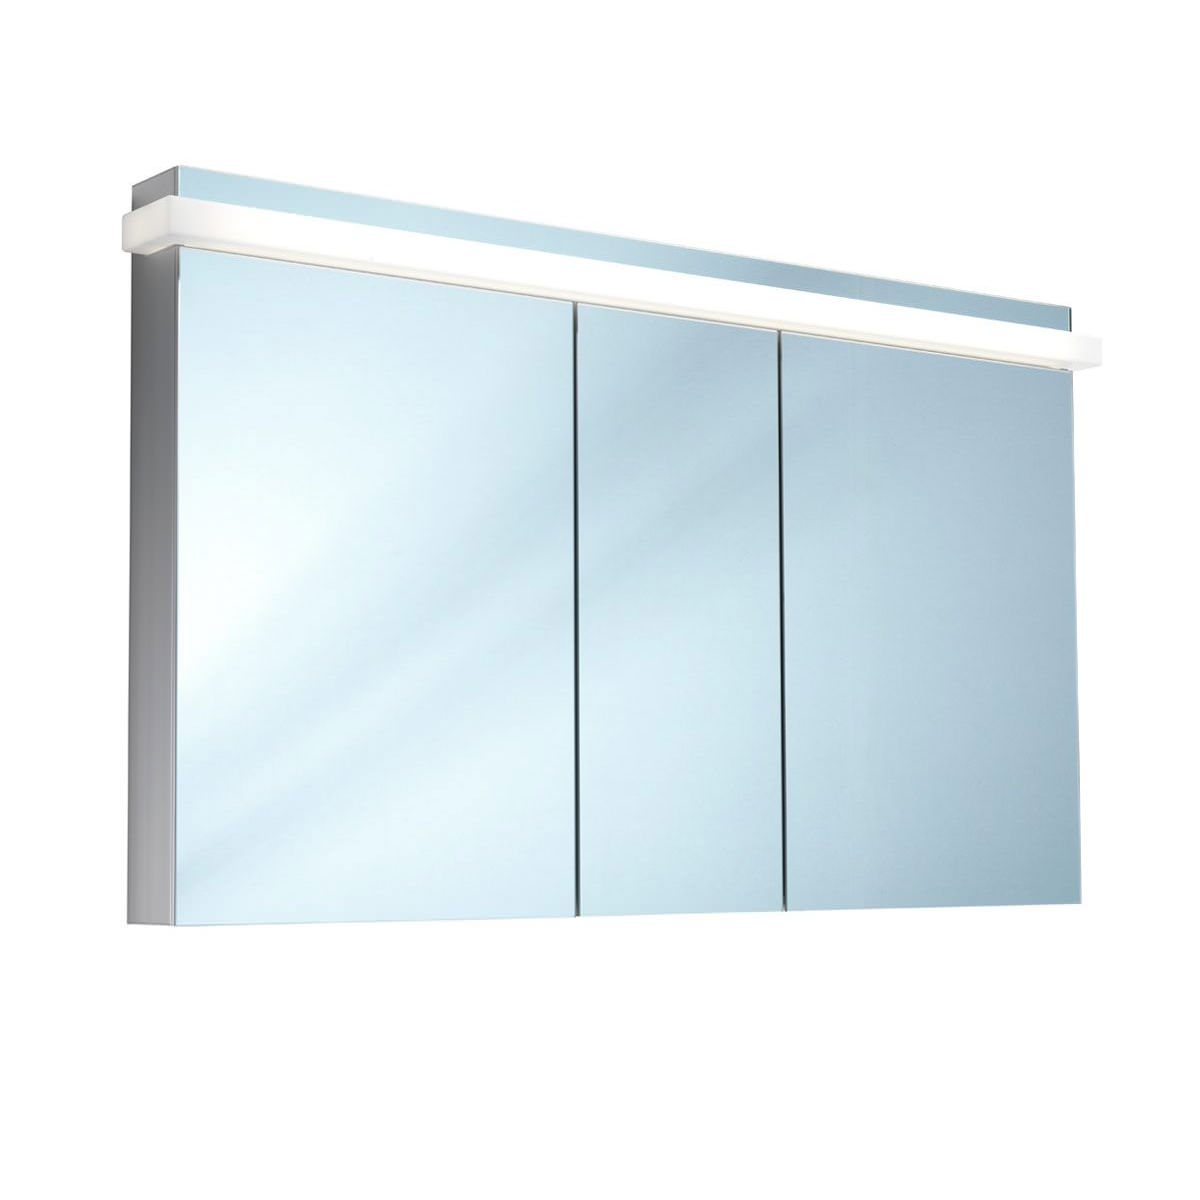 schneider taikaline 3 door 1300mm mirror cabinet door